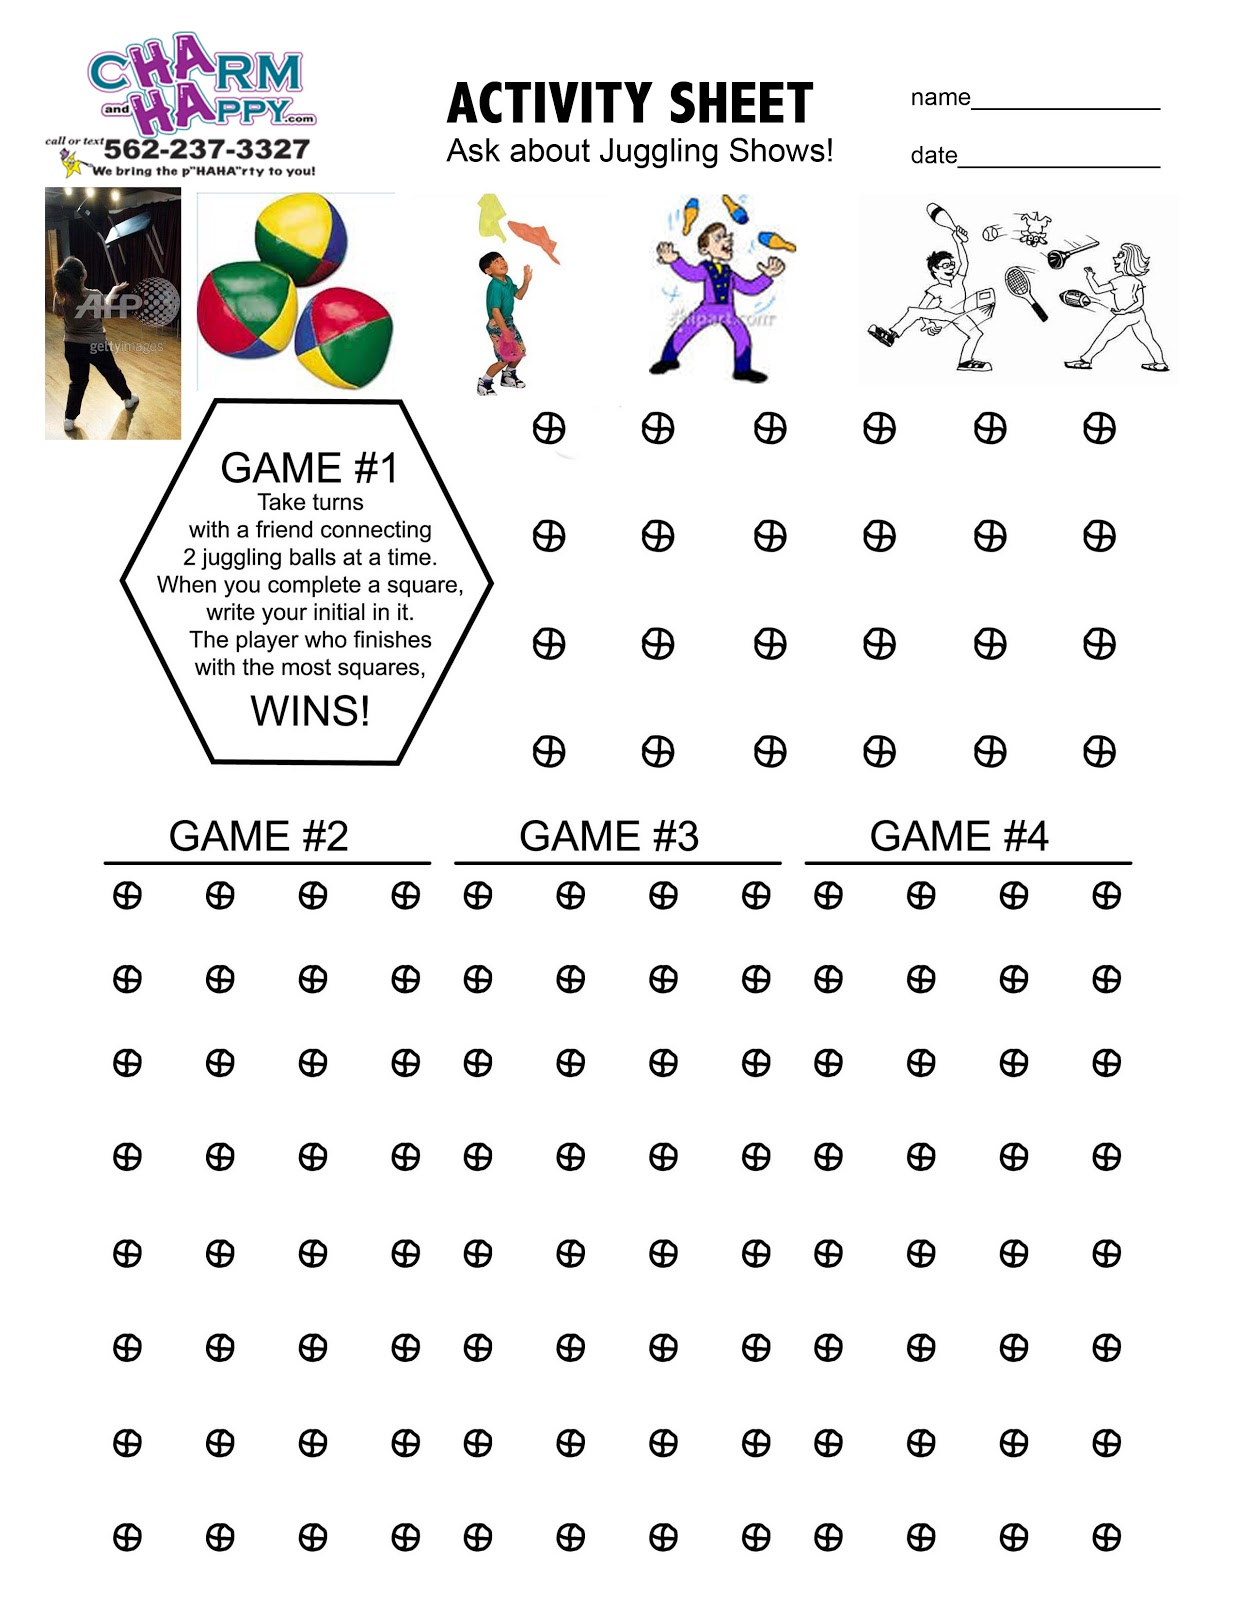 Activity Sheets By Charmandhappy